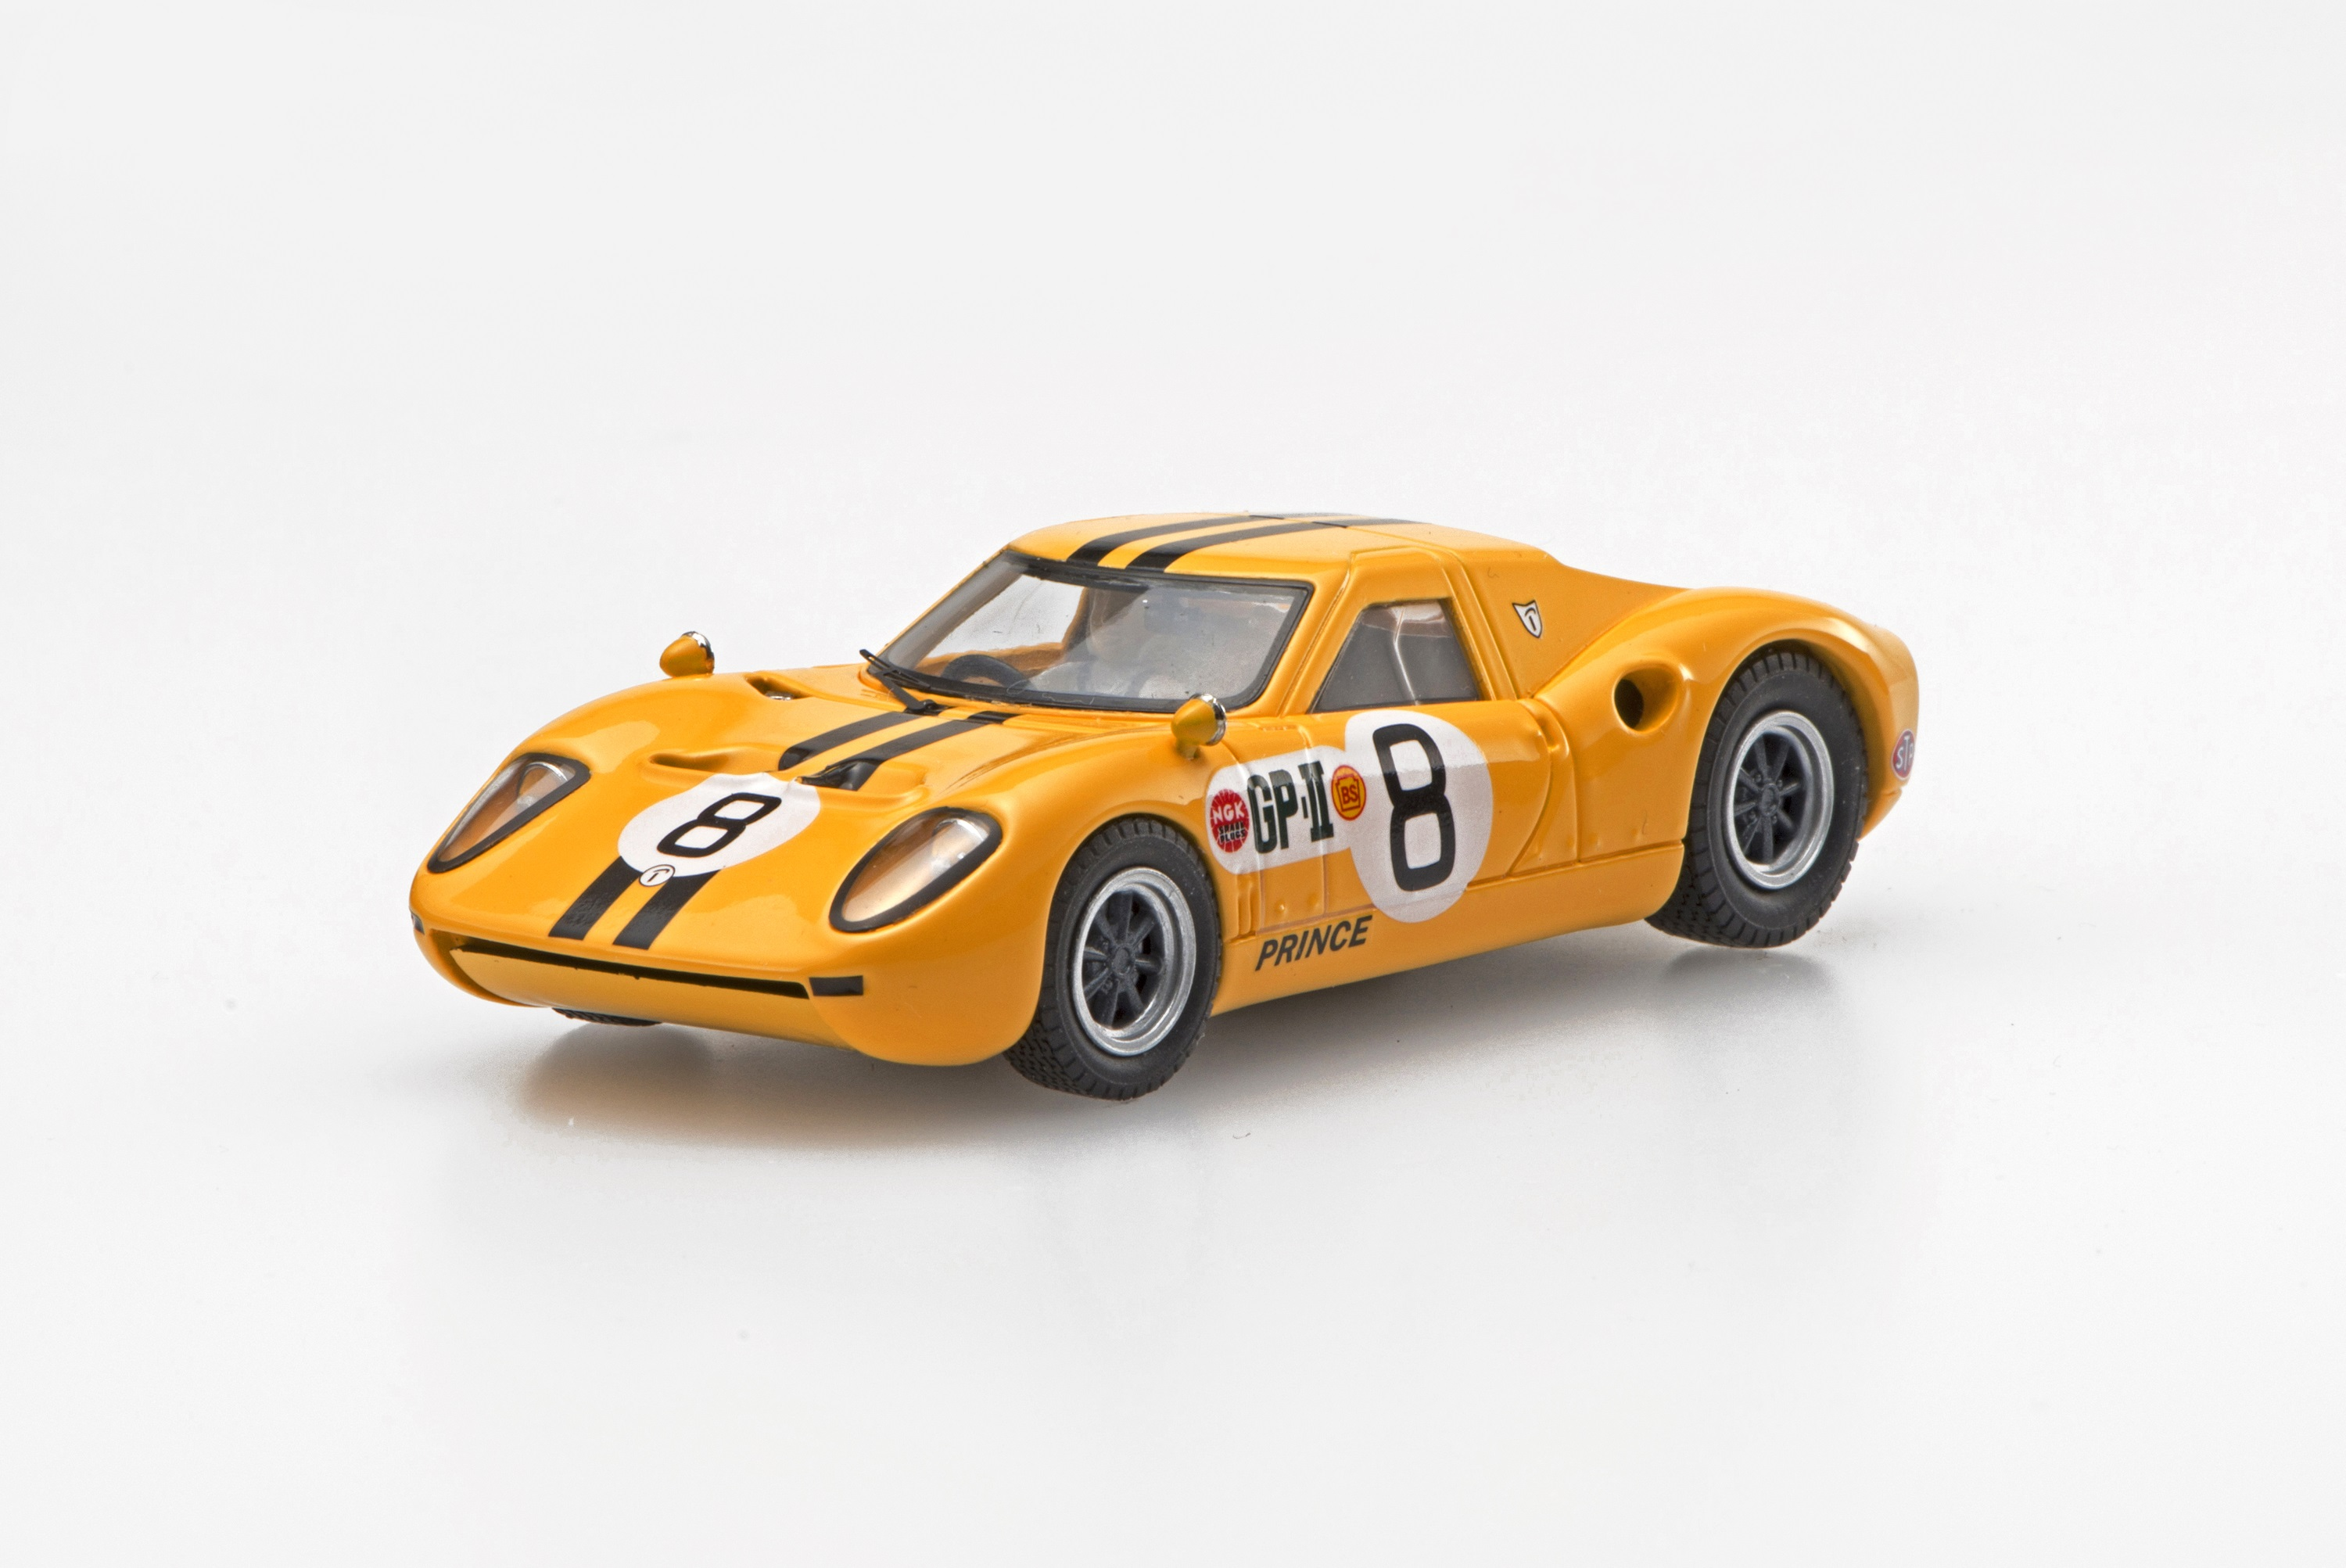 【45345】Prince R380 1966 Japan GP IKUZAWA No.8 【RESIN】